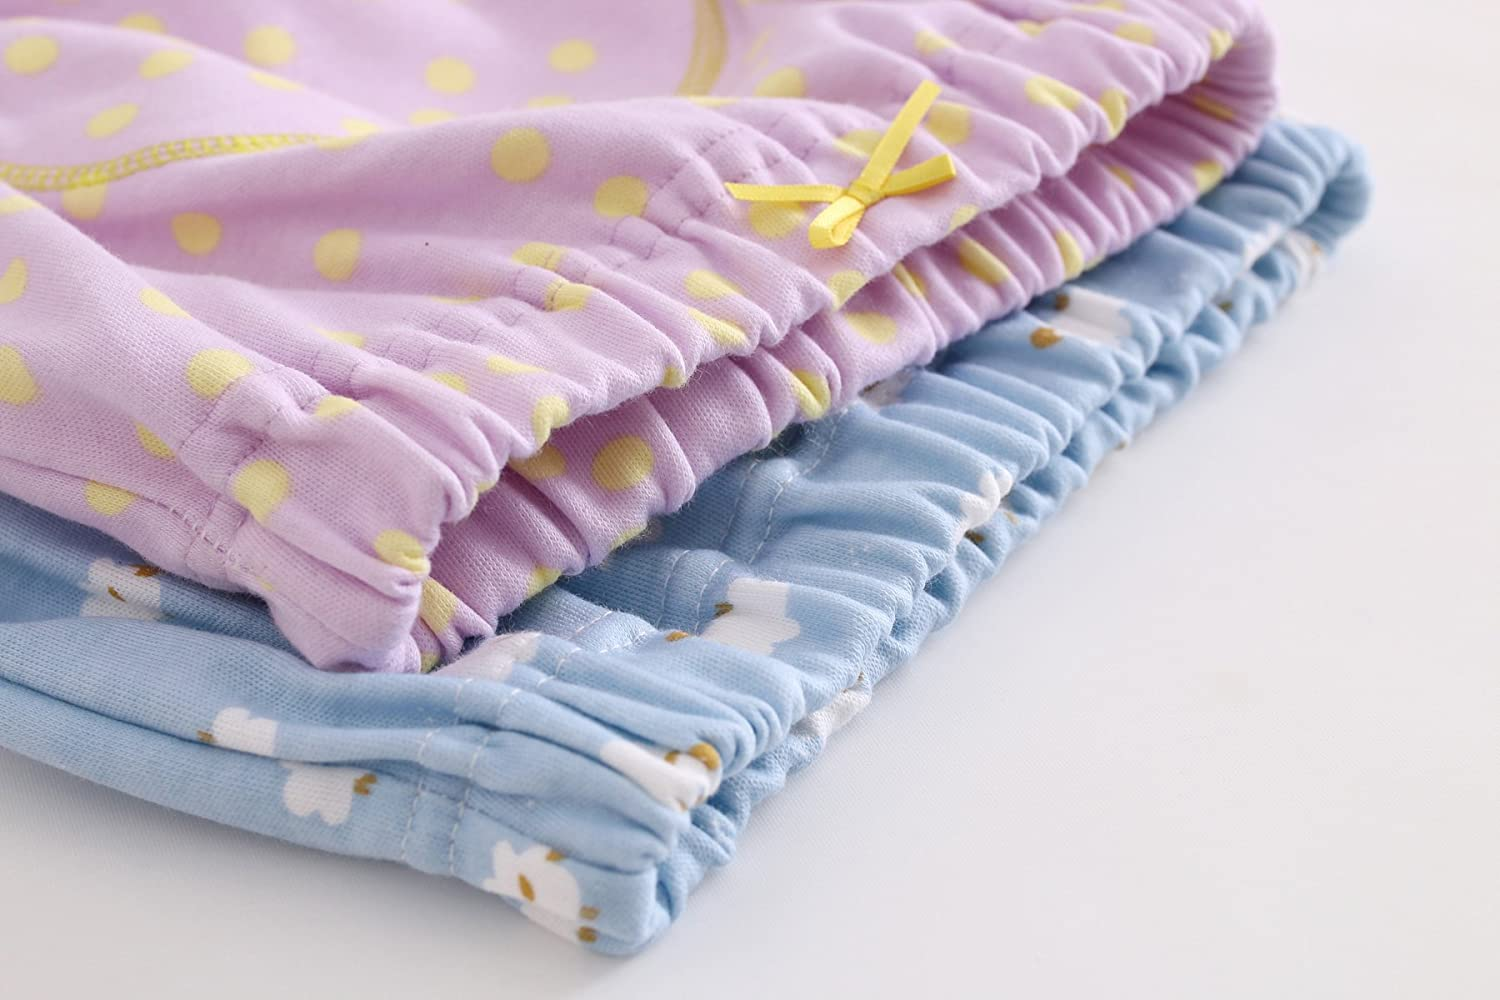 FYDRISE Baby Girls Cotton Training Underpants 4 Absorbent Layers Assorted Animals 6-36 Months